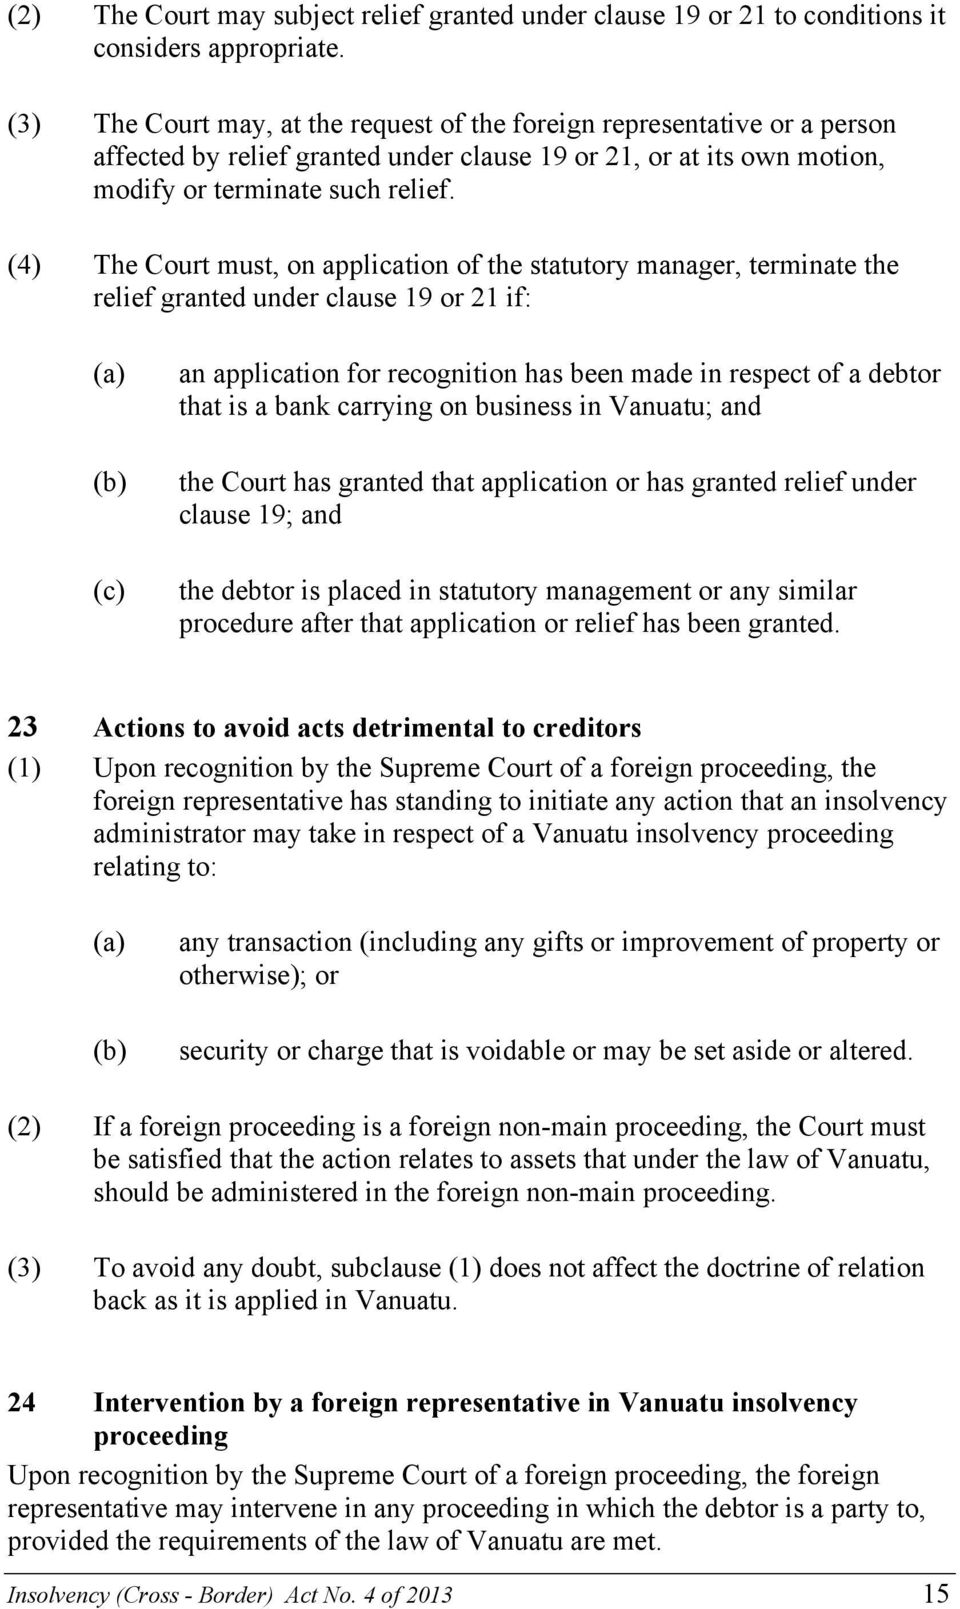 (4) The Court must, on application of the statutory manager, terminate the relief granted under clause 19 or 21 if: an application for recognition has been made in respect of a debtor that is a bank